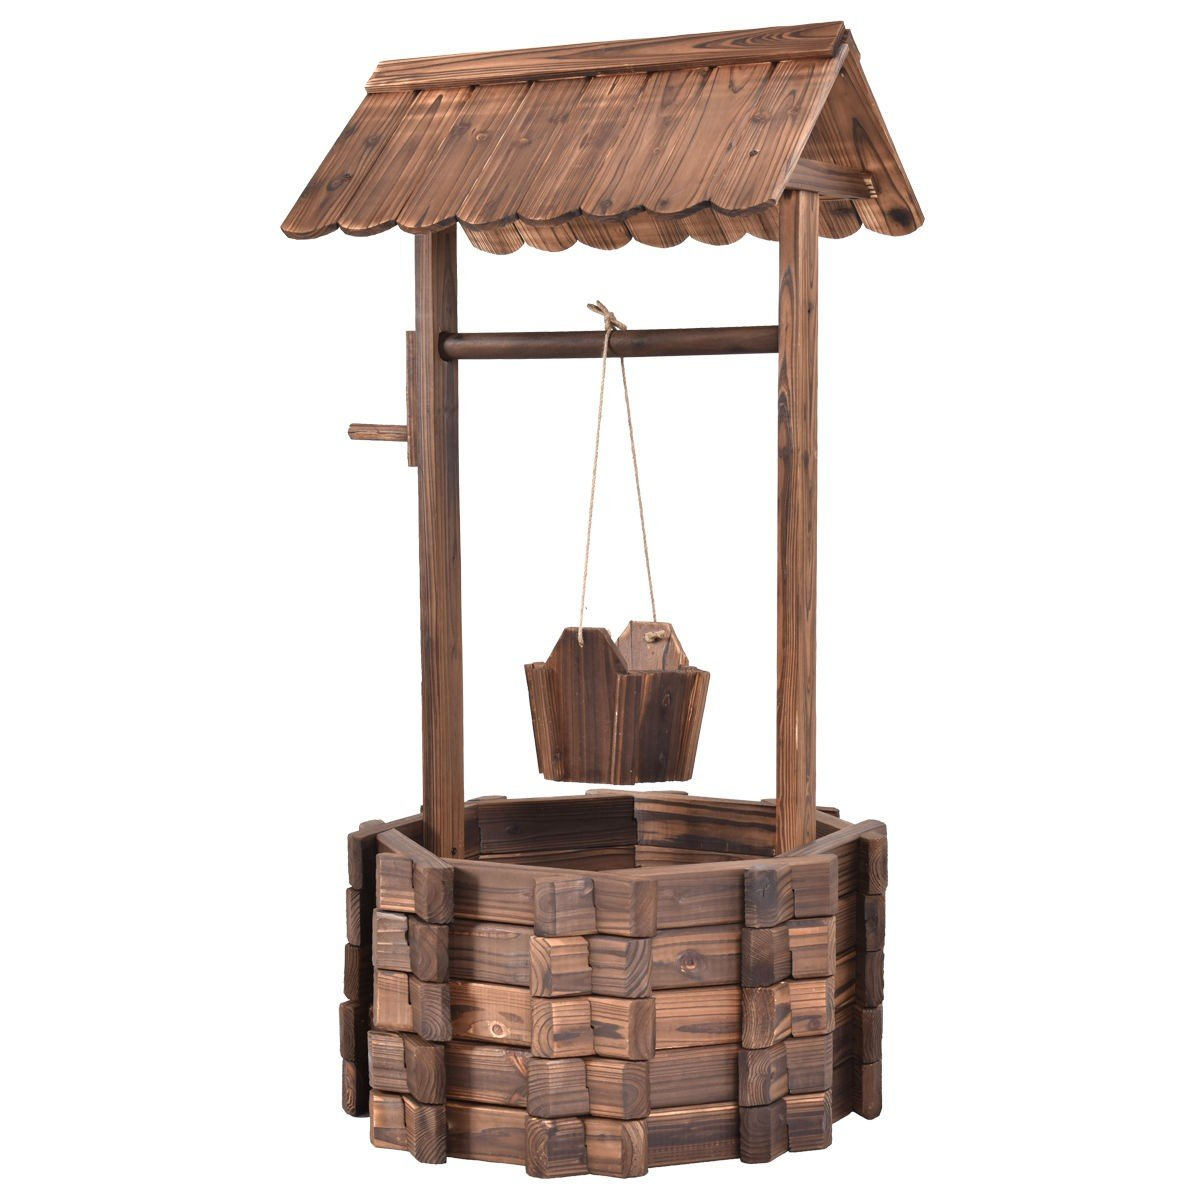 Wooden Wishing Well Hanging Planter Bucket Garden Patio Lawn Decor With Ebook by oldzon